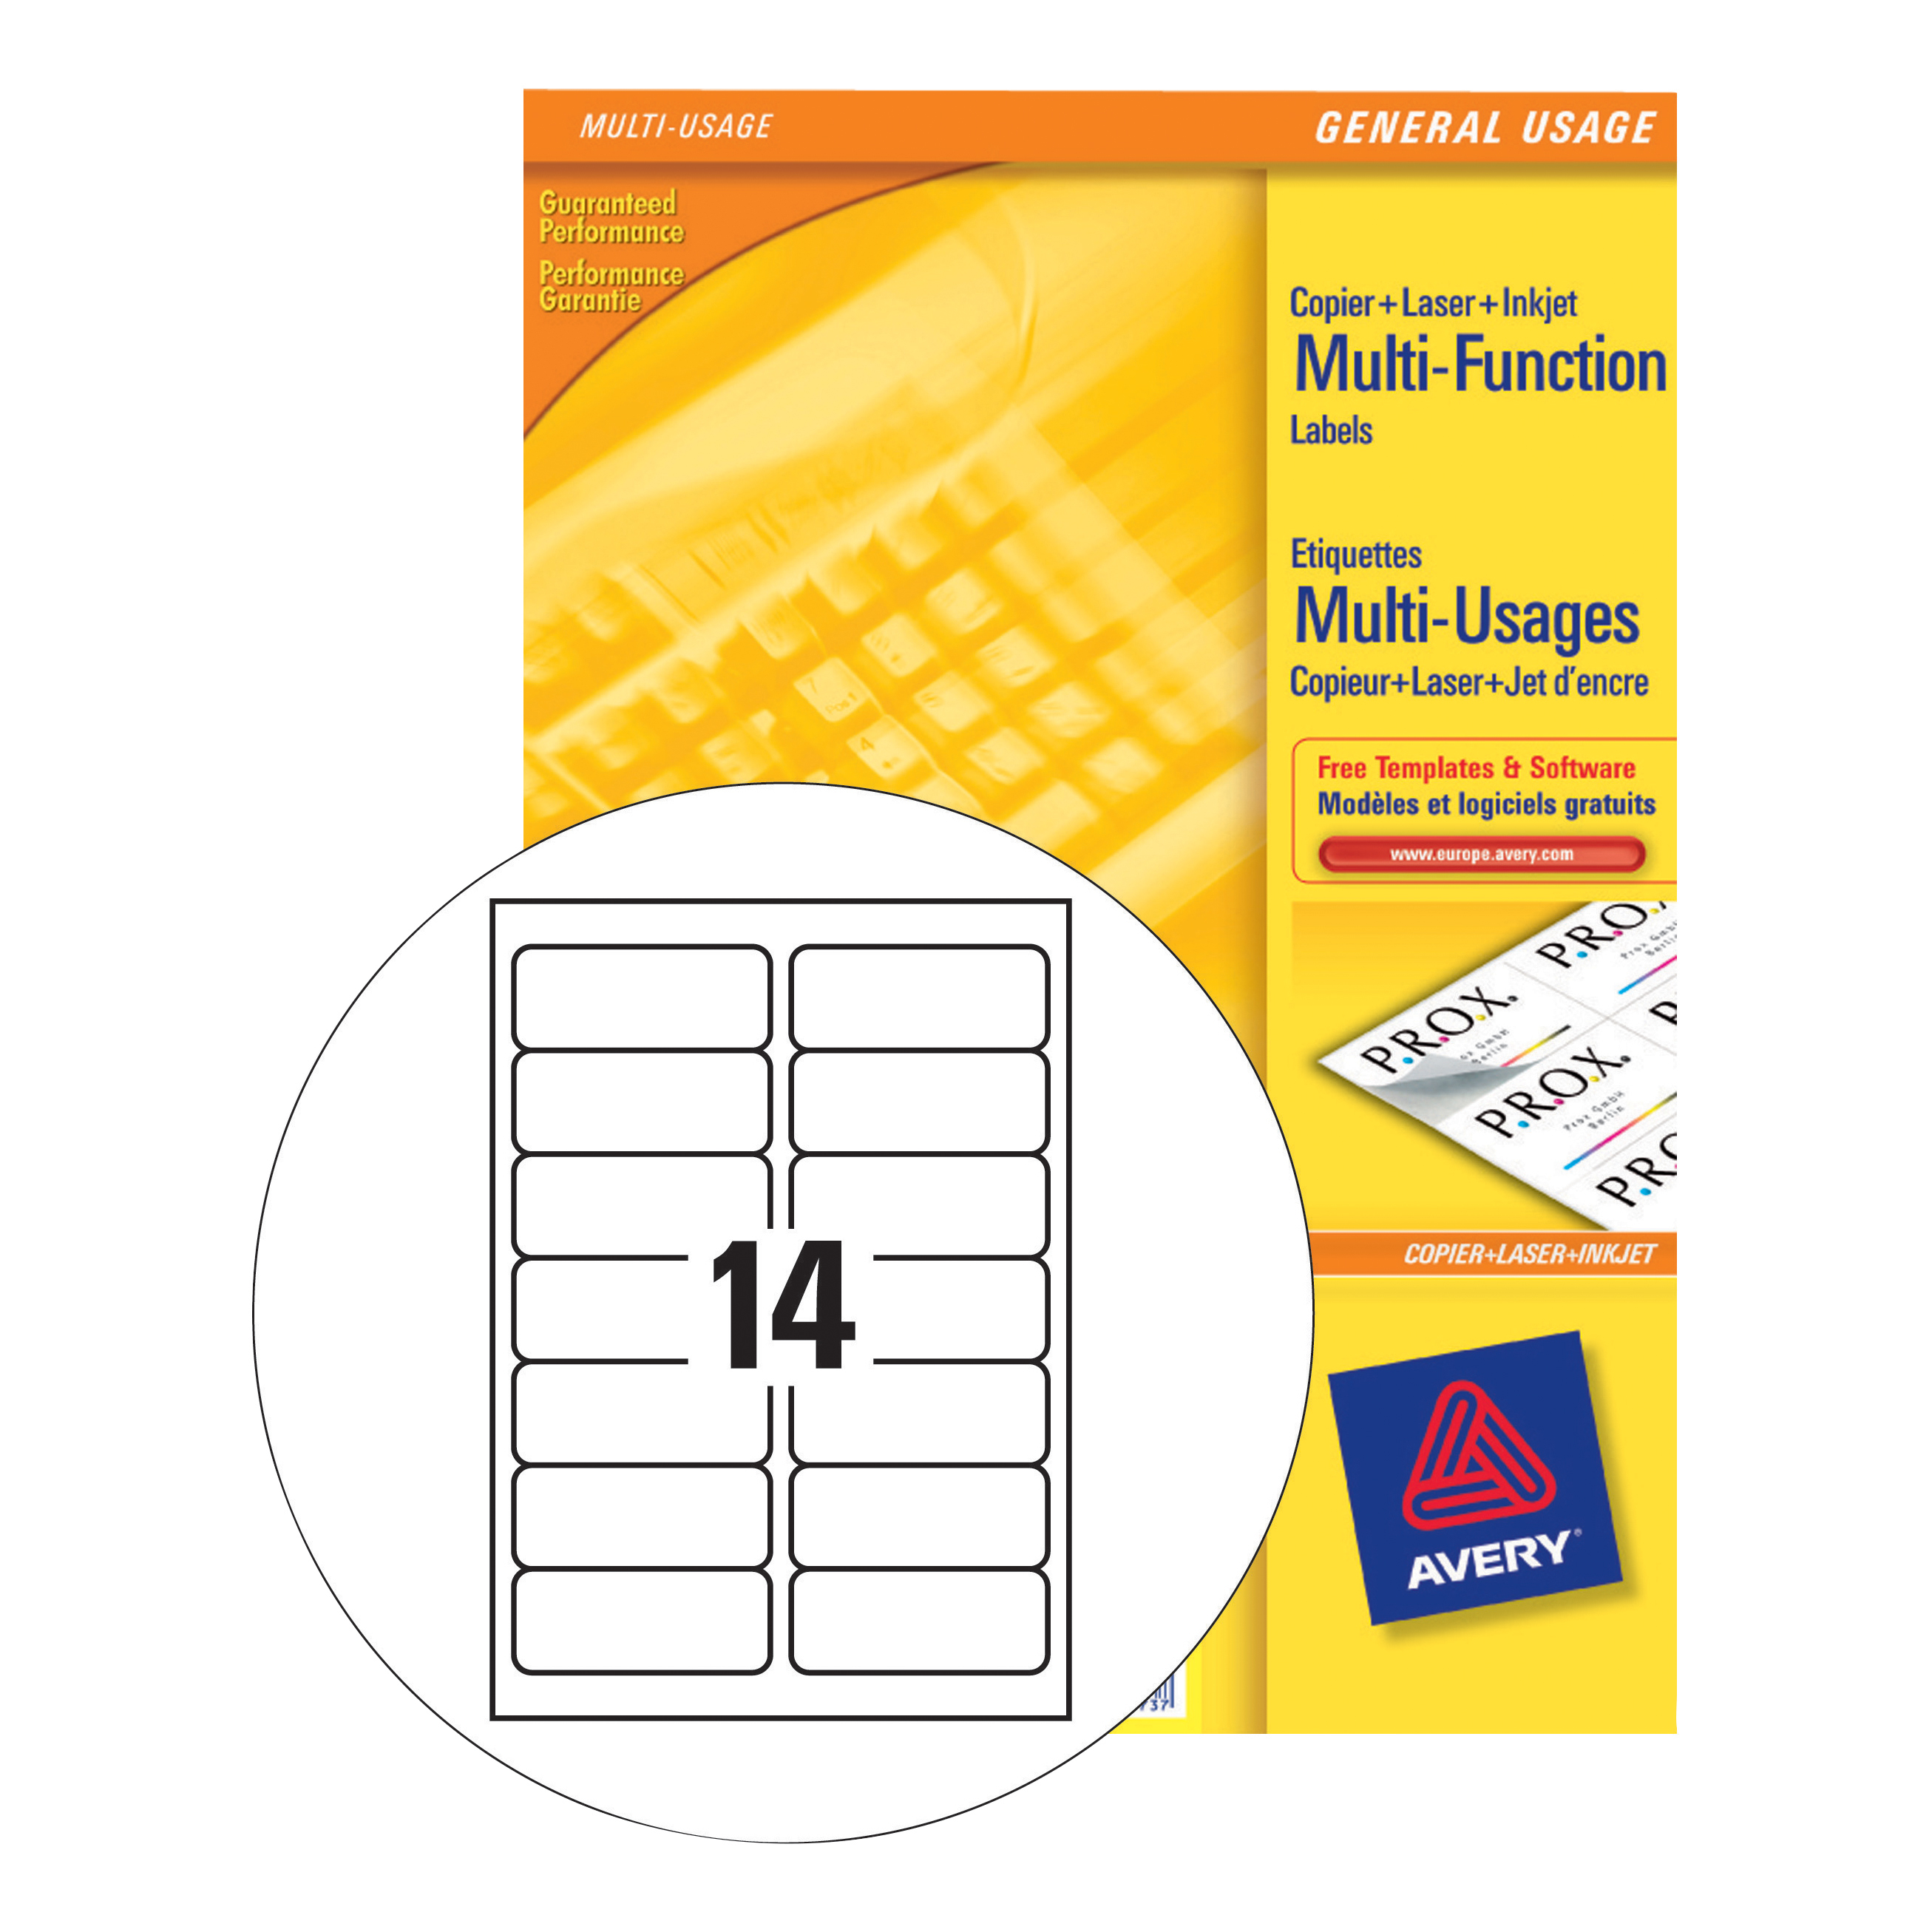 Address Avery Multipurpose Labels Laser Copier Inkjet 14 per Sheet 105x42.3mm White Ref 3653 [1400 Labels]